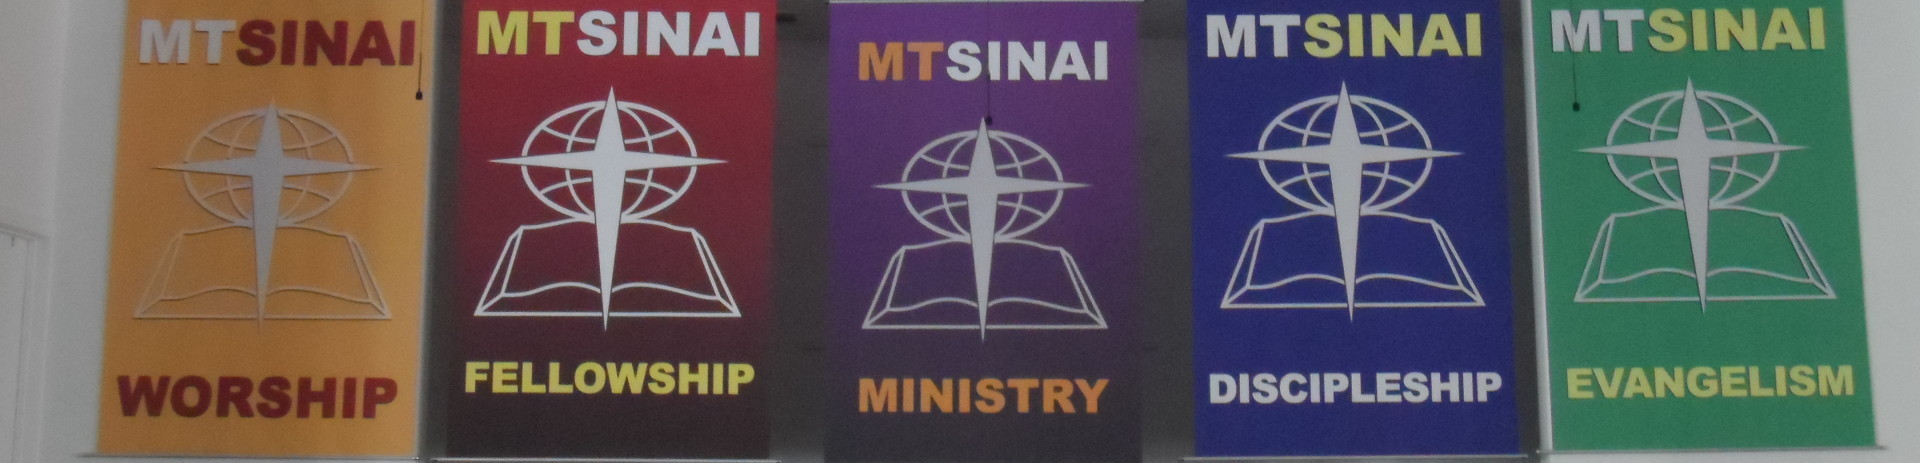 Congratulations and Blessings Mt. Sinai for over 75 years of faithful service to the Lord!